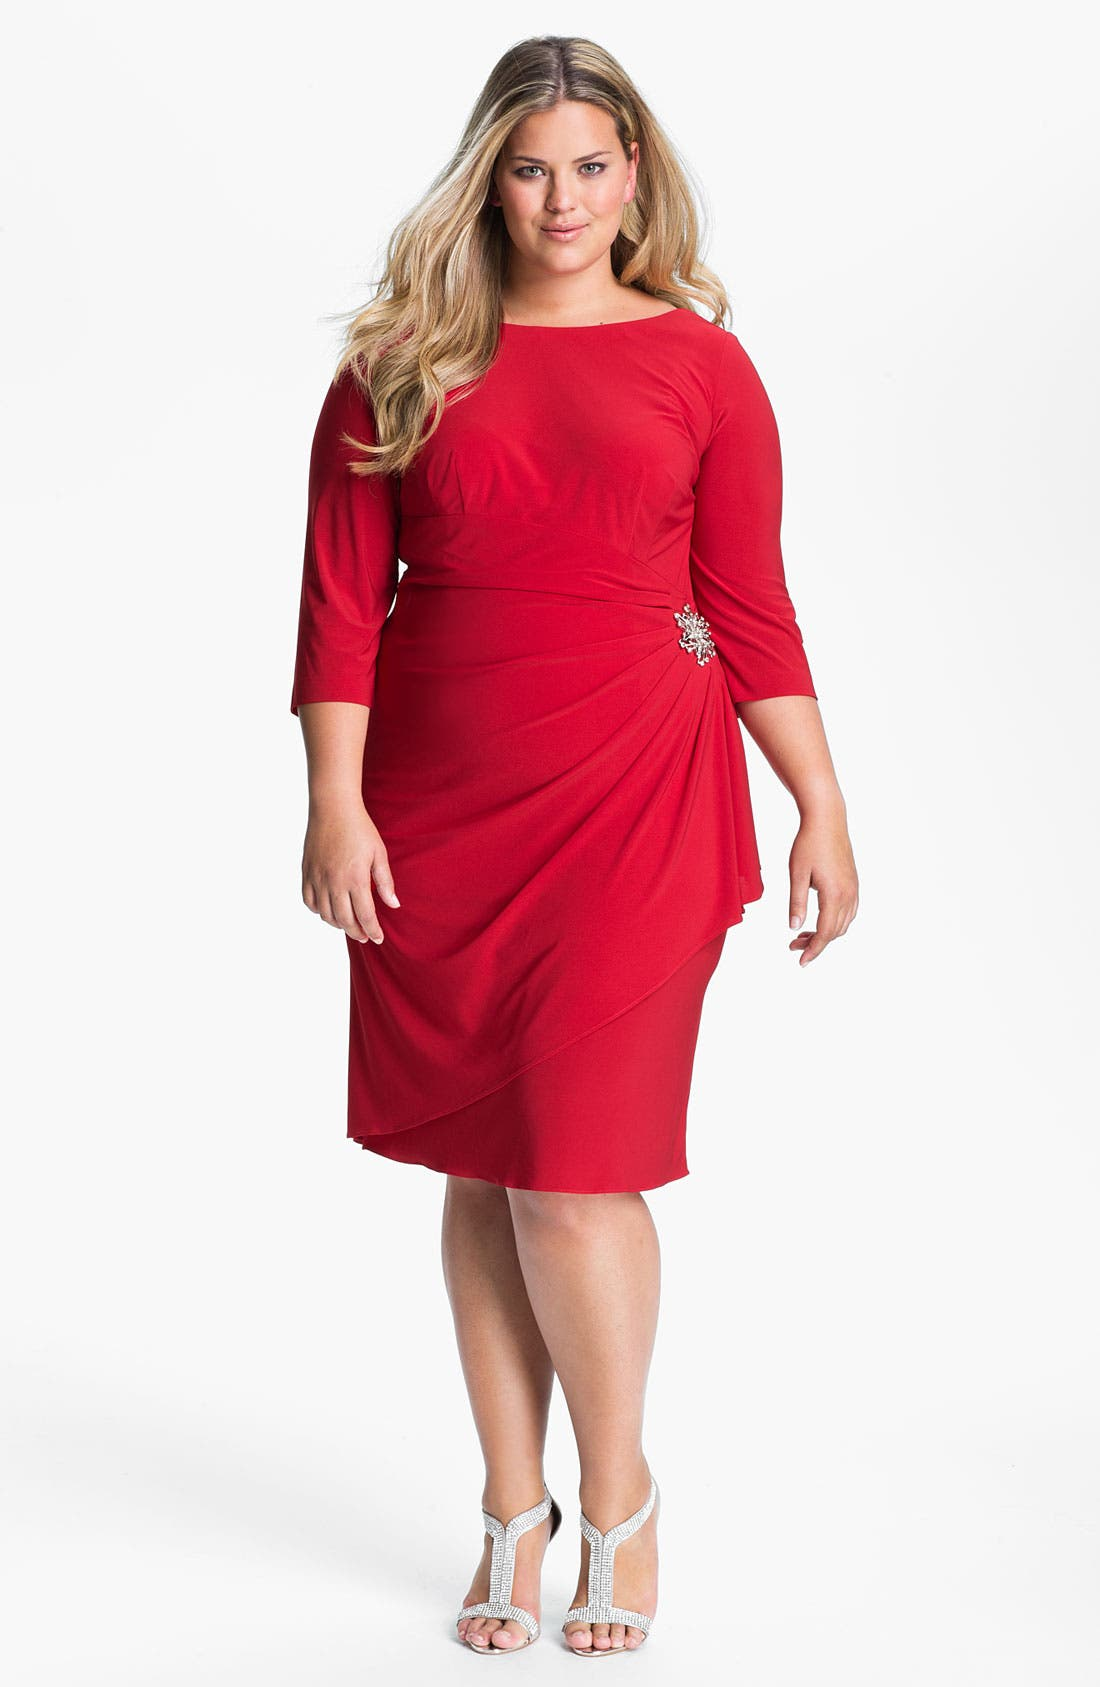 Alternate Image 1 Selected - Alex Evenings Jeweled Faux Wrap Matte Jersey Sheath Dress (Plus Size)